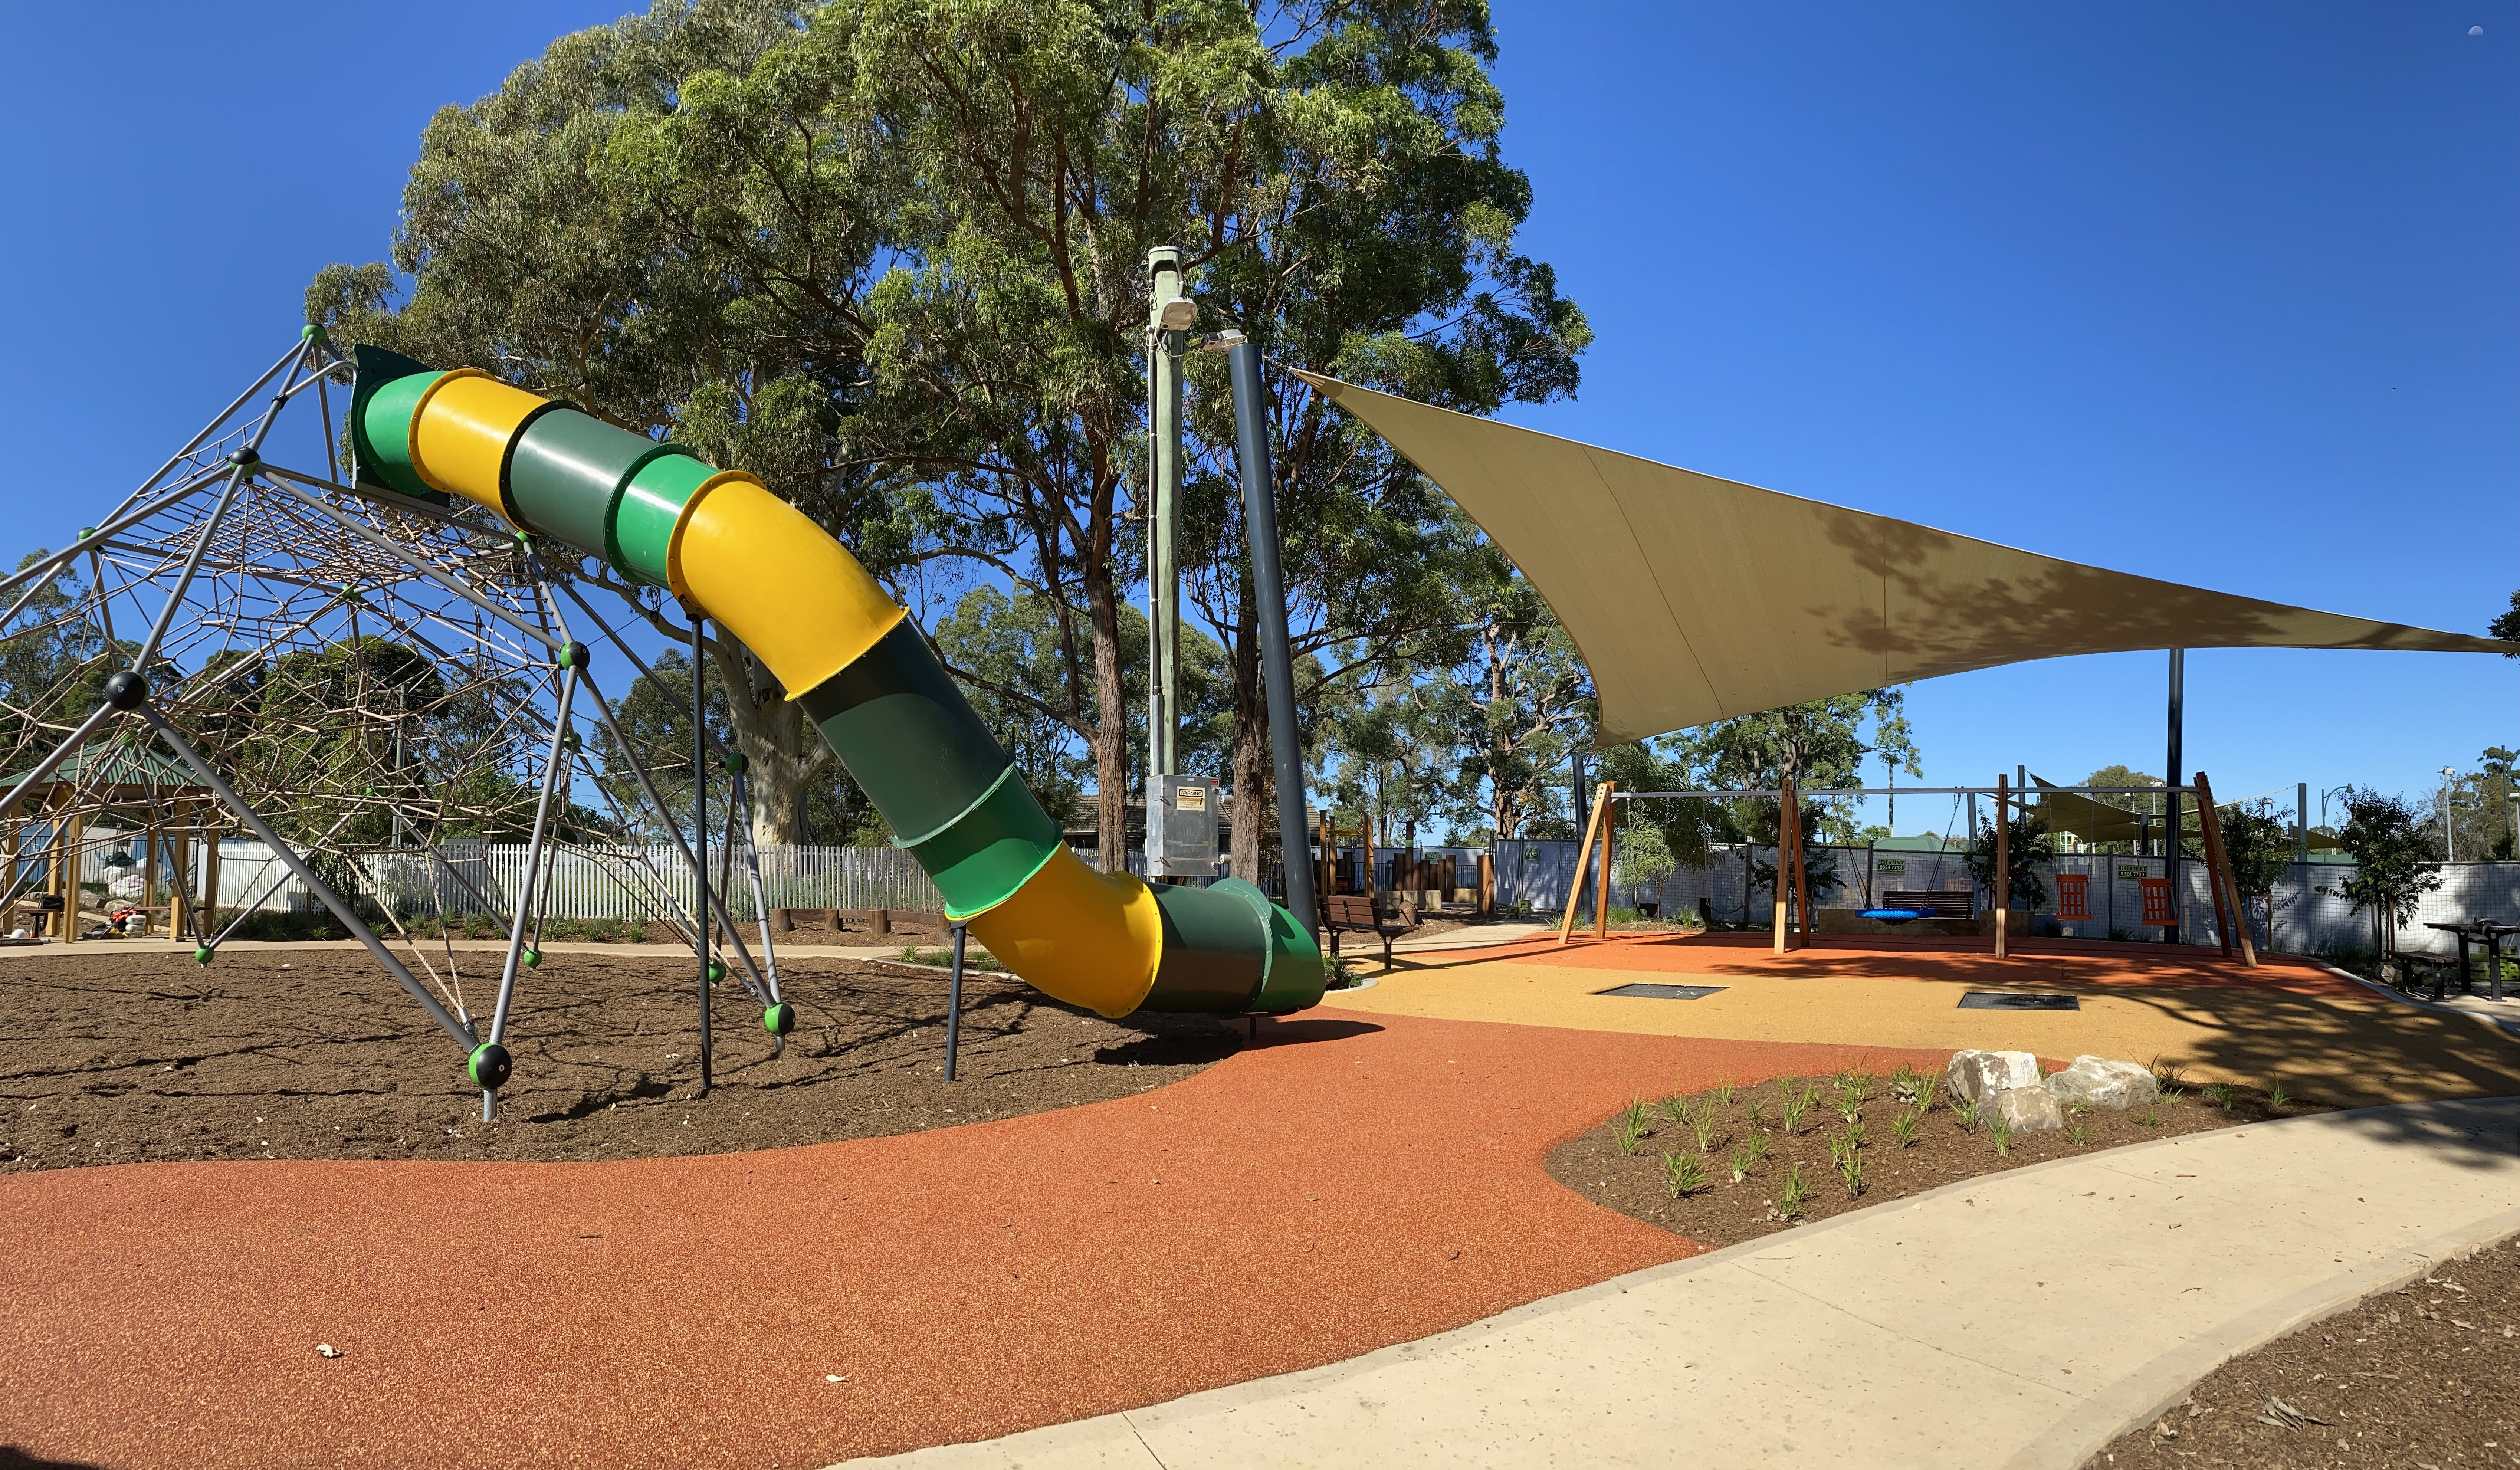 Climbing Tower and Slide with the Swings and Trampoline to the right